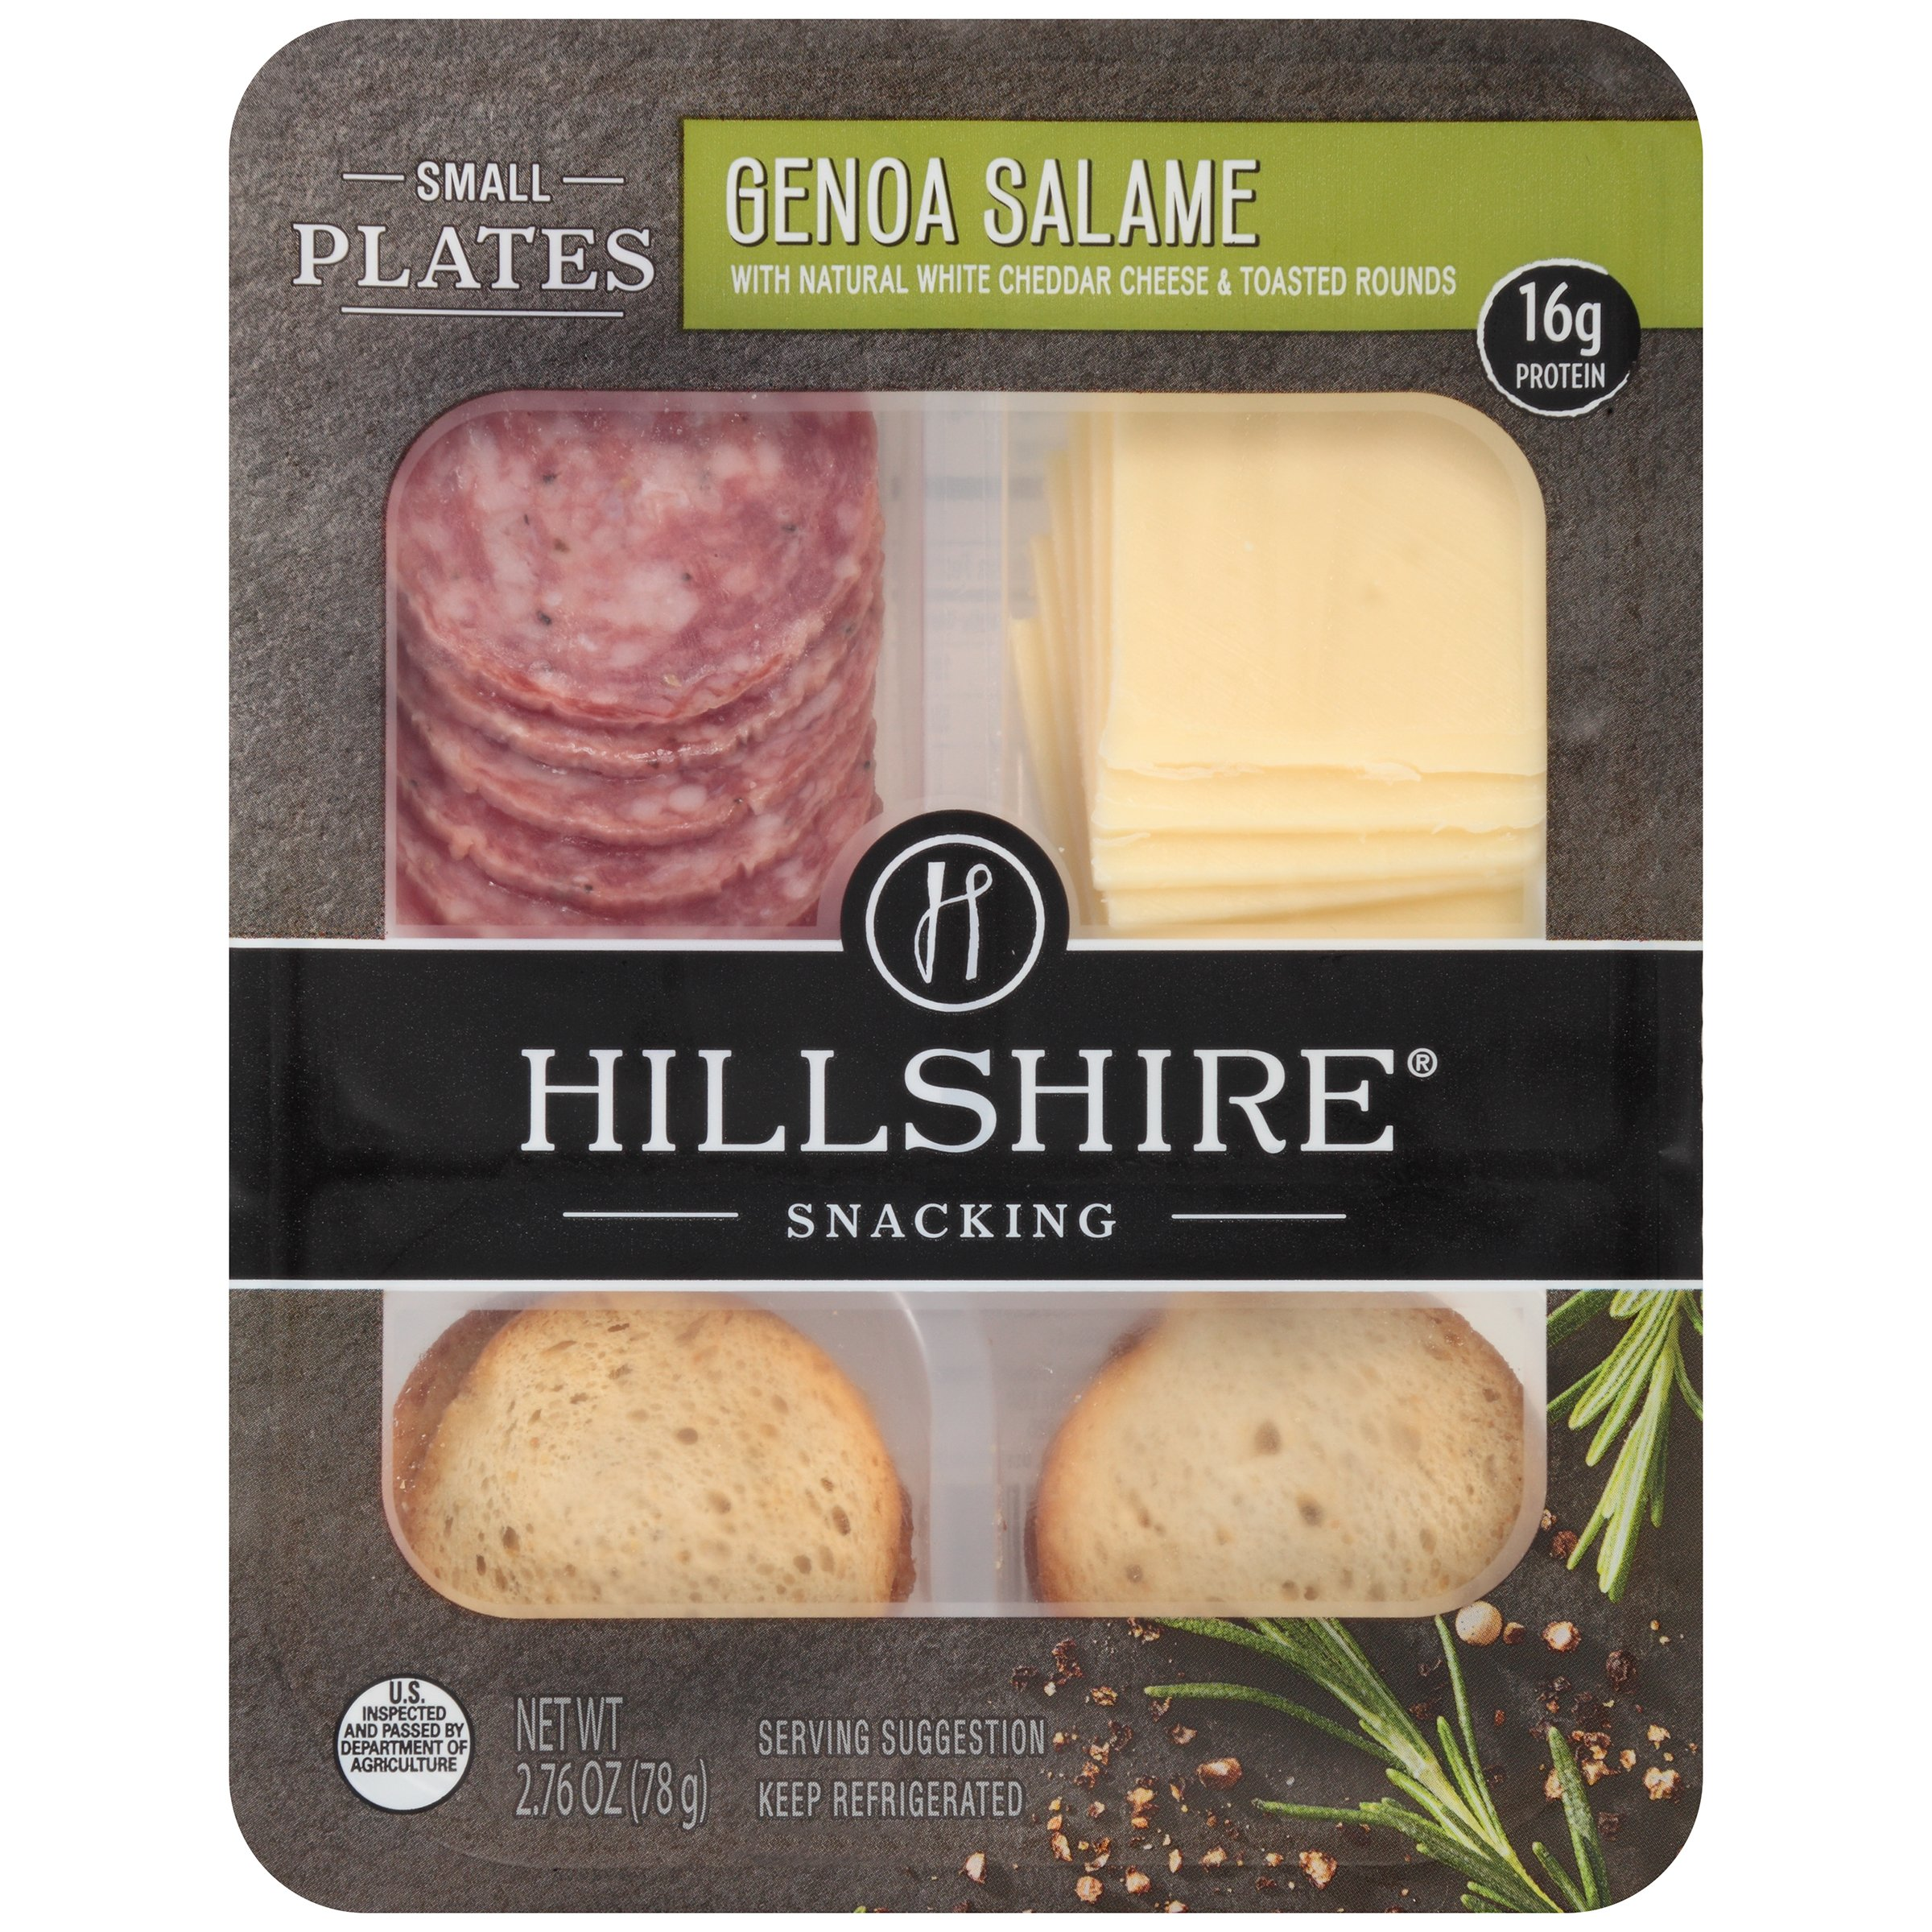 Hillshire Snacking Small Plates HSH Genoa Salame, 2.76 Ounce - 12 per case.